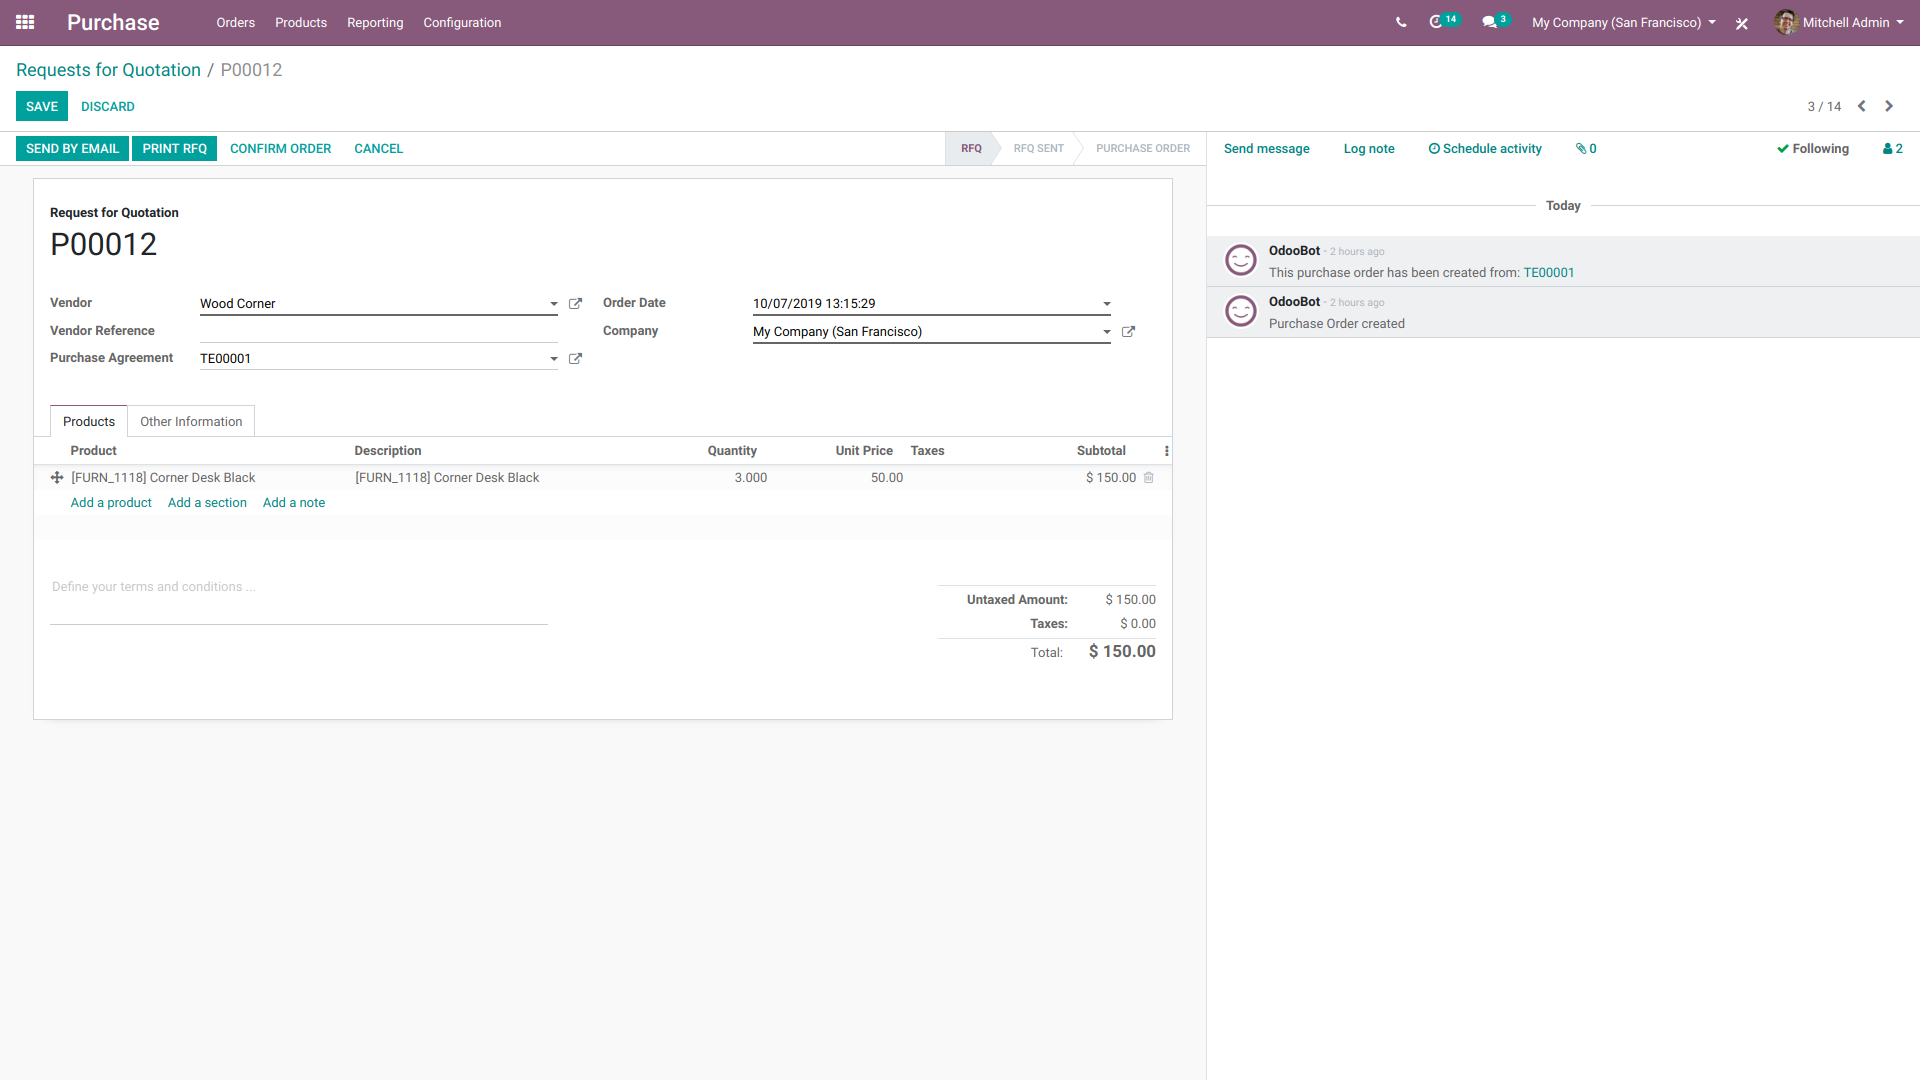 Odoo Purchase Detail